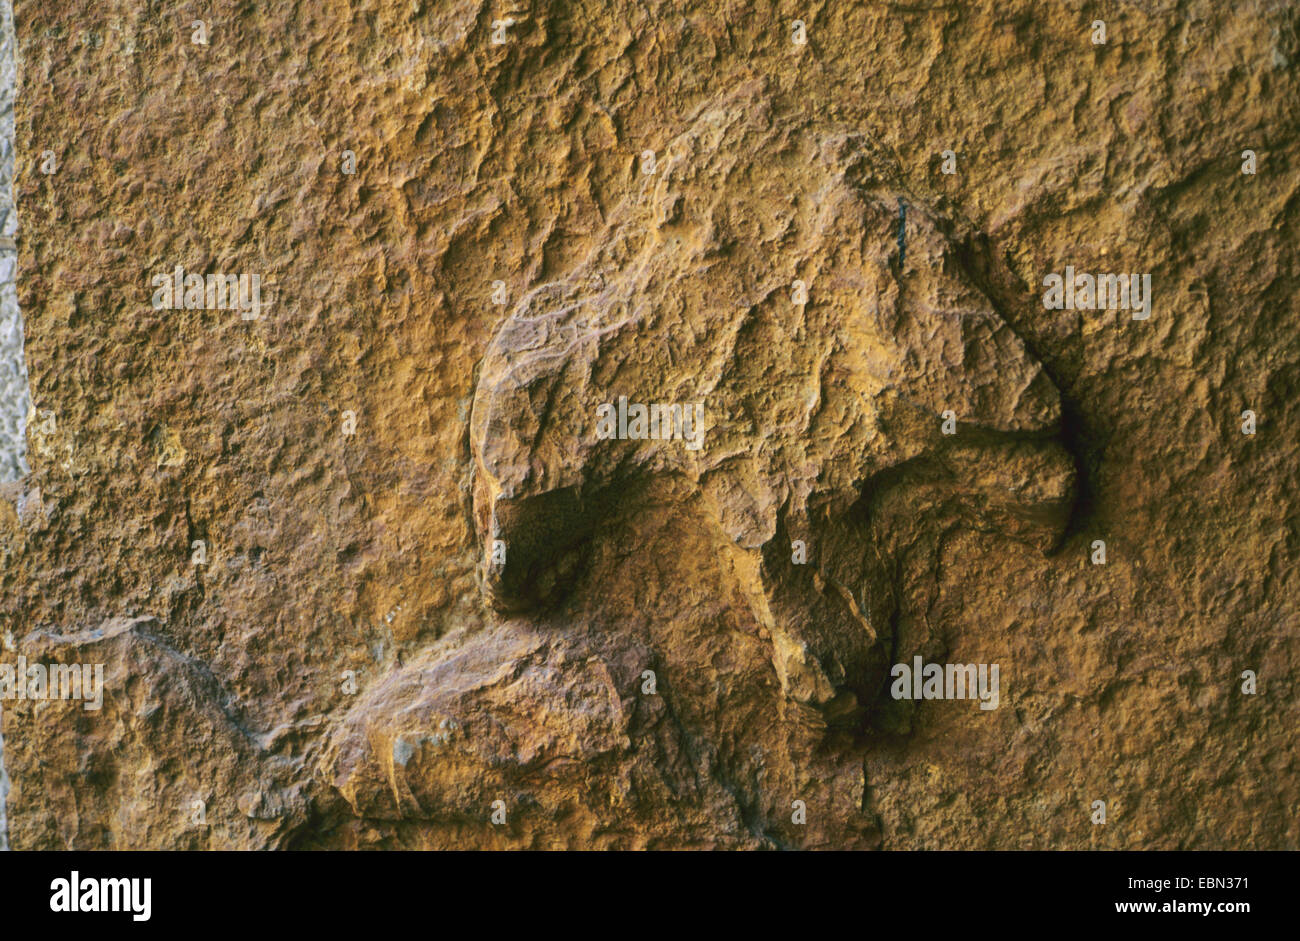 fossilized tracks of an Iguanodon from the Cretaceous, Germany, Lower Saxony, Oberkirchen - Stock Image